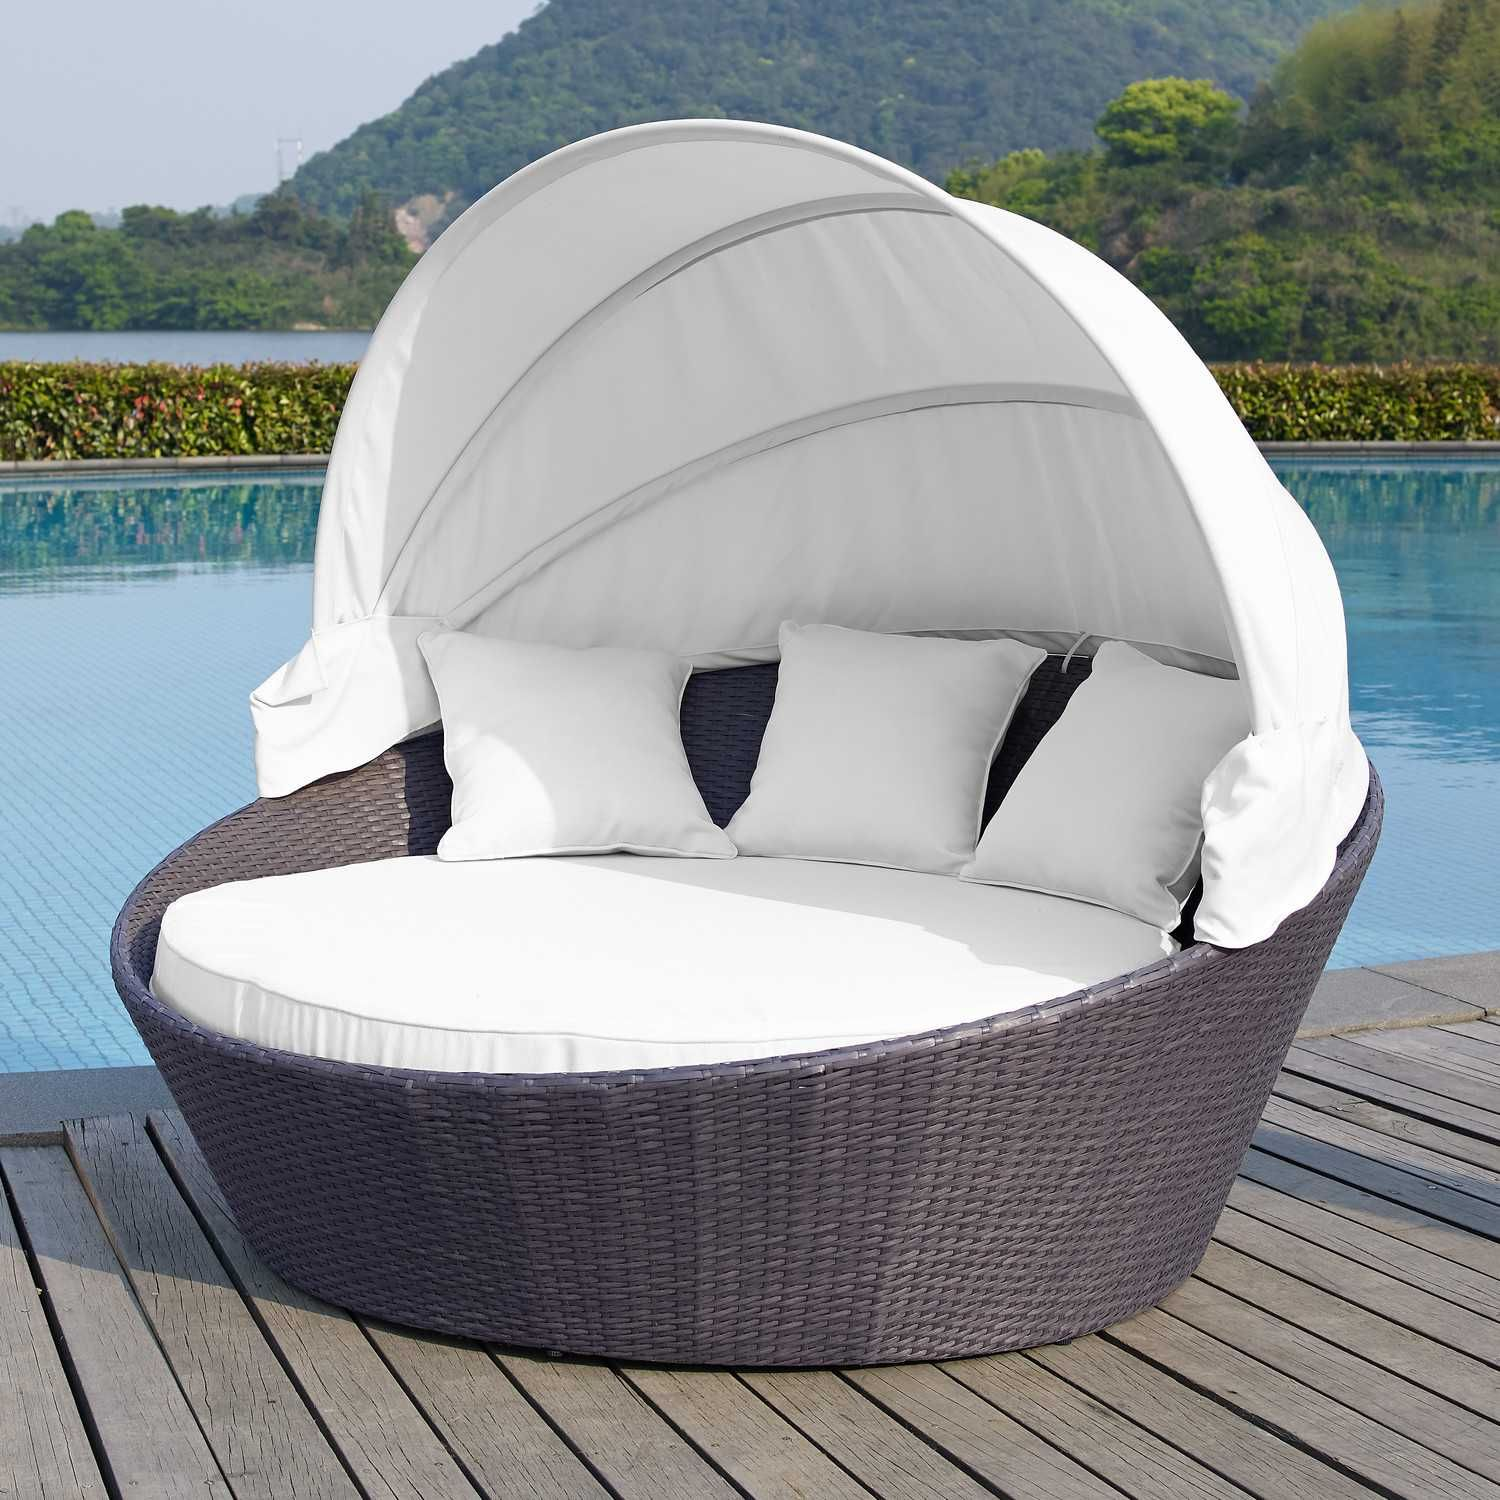 Designer Büromöbel Outlet Chaiselongue Outdoor Pool Möbel Mesh Chaise Lounge Outdoor Möbel